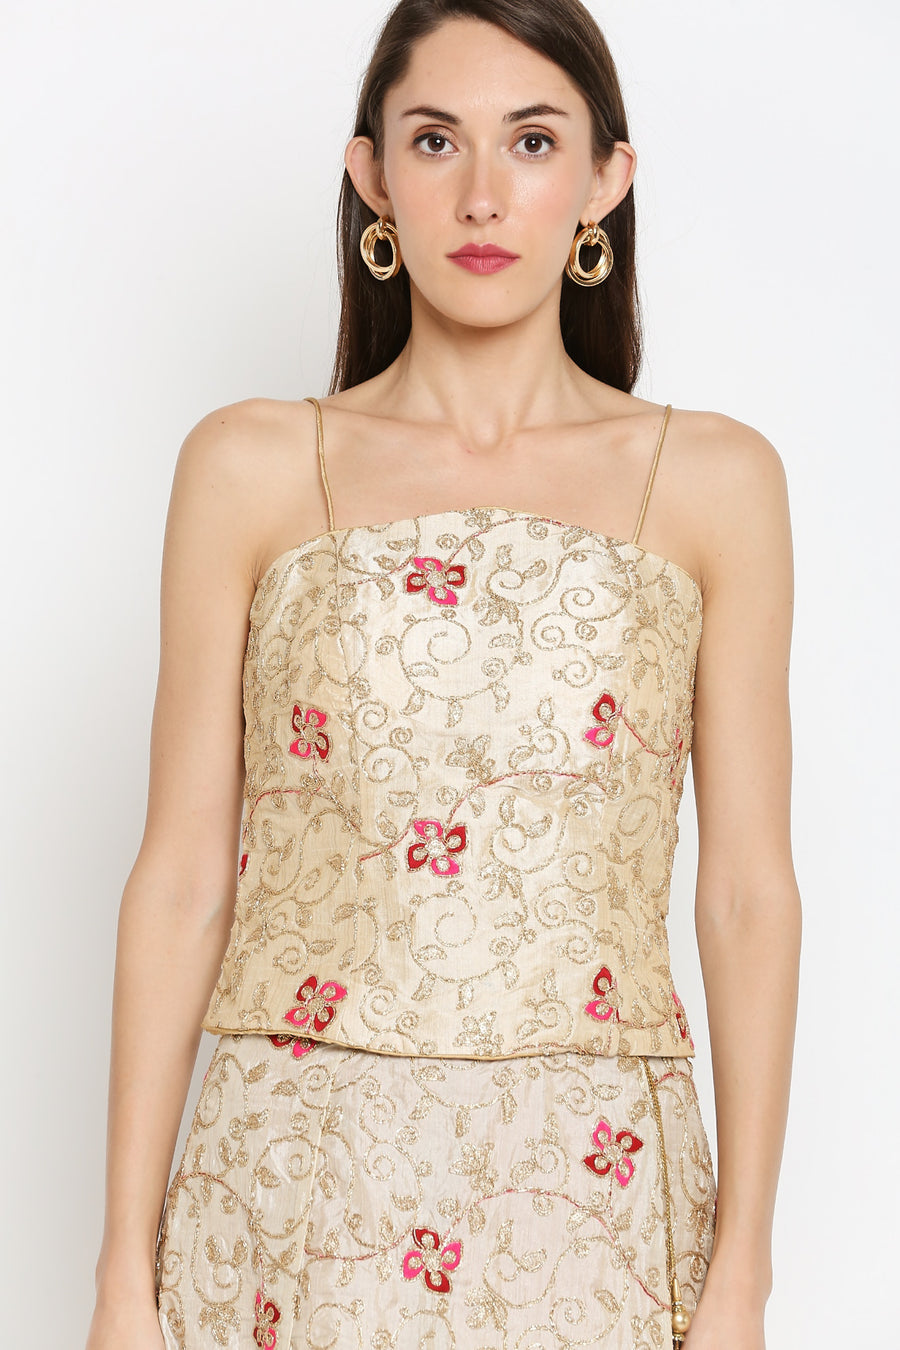 Ira Soleil Off-White Floral Embroidered Top